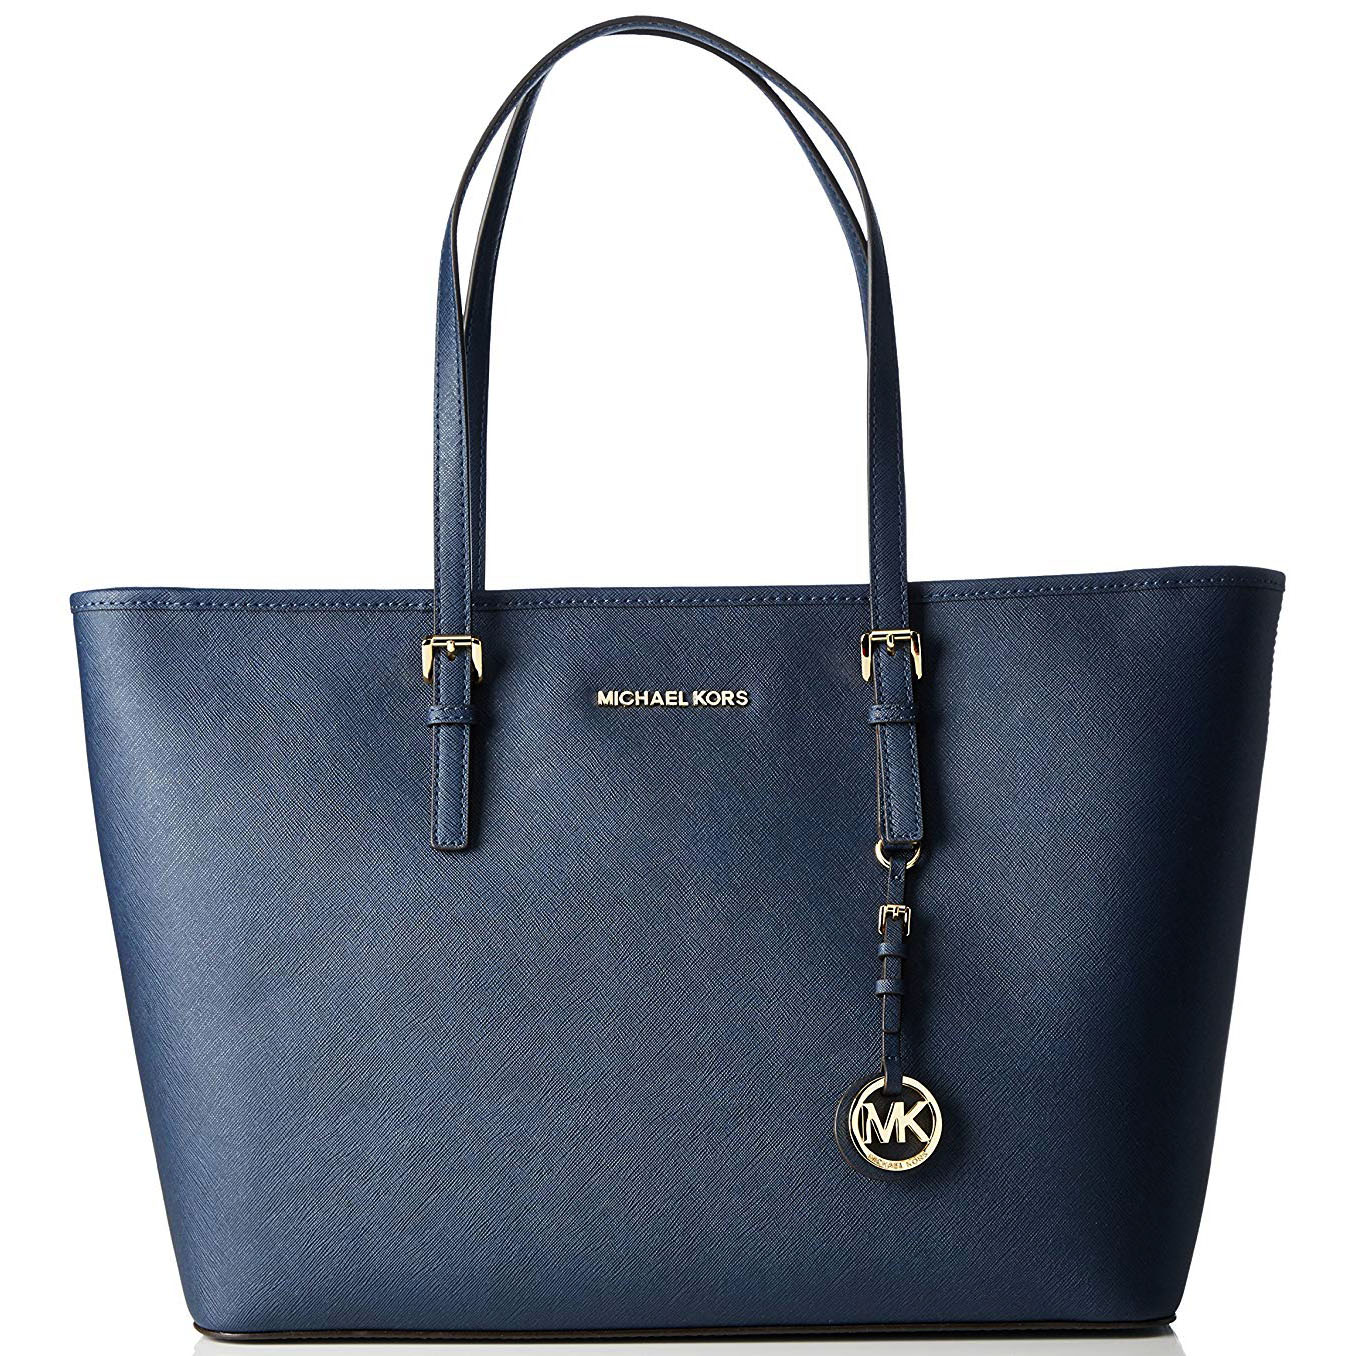 Michael Kors Jet Set Travel Medium Top Zip Multifunctional Saffiano Leather Tote Navy Blue # 30T5GTVT2L